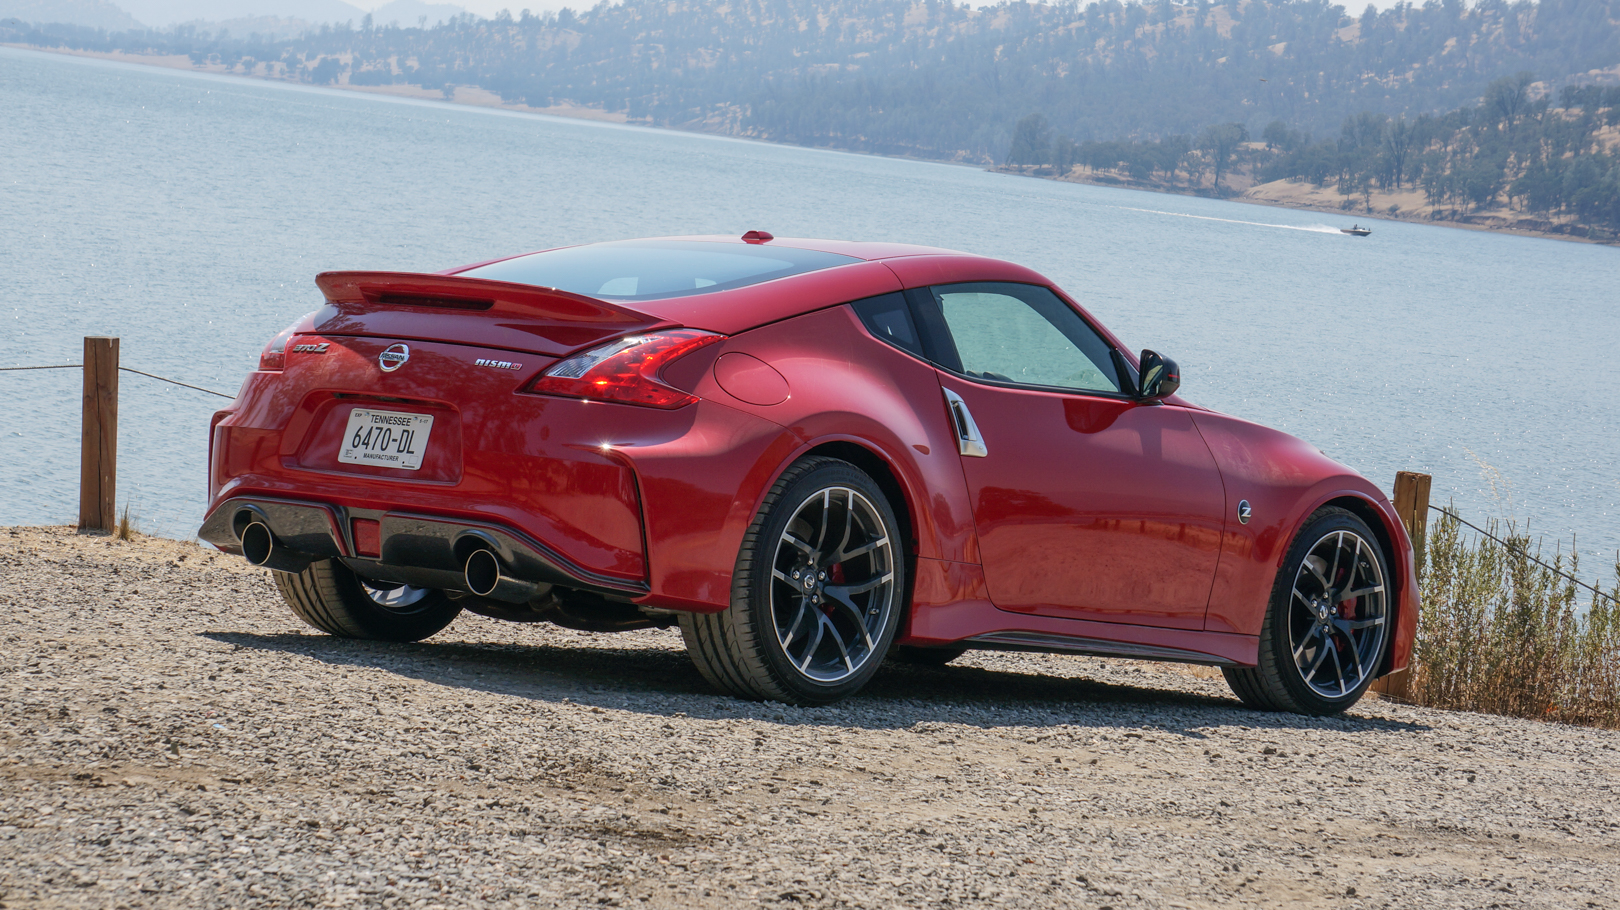 2017 Nissan 370Z Nismo coupe